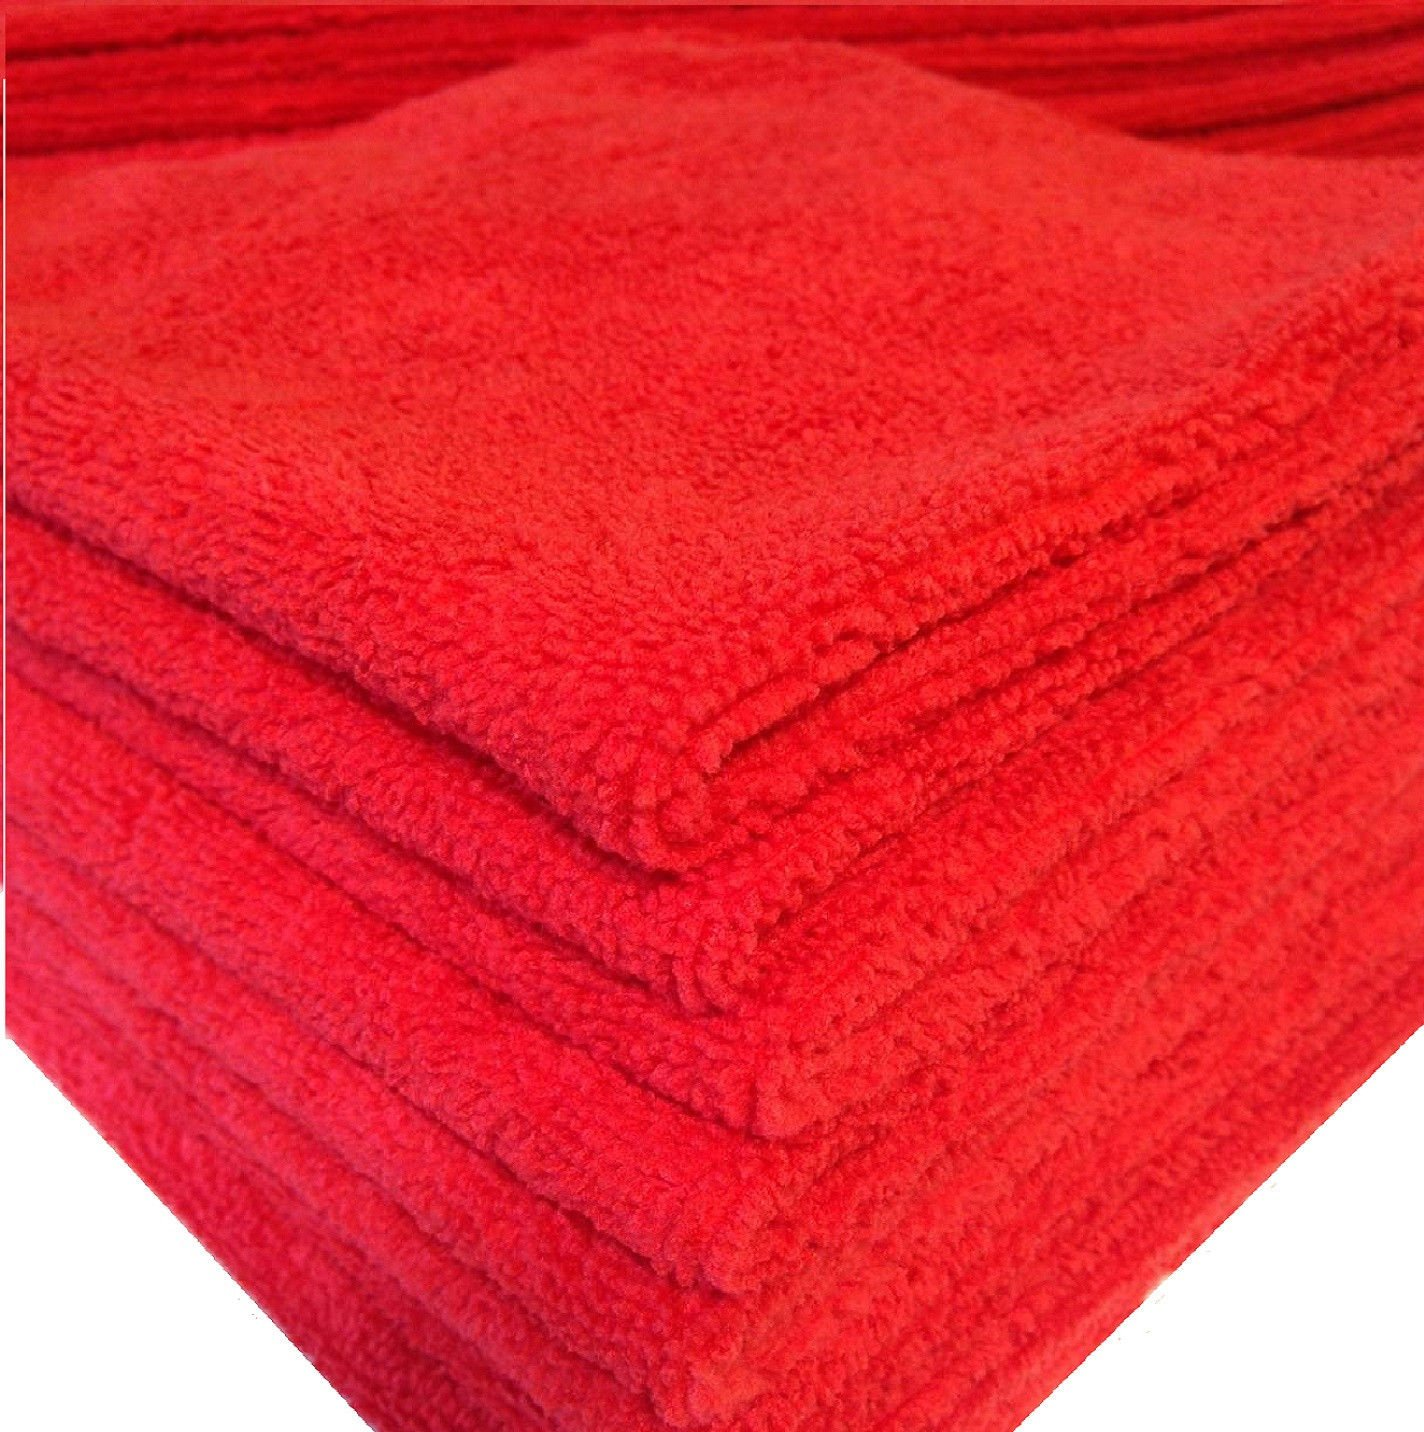 GHP 60Pcs. 16''x16'' Red Ultra Absorbent Microfiber Cleaning Cloth/Towel by Unknown (Image #2)